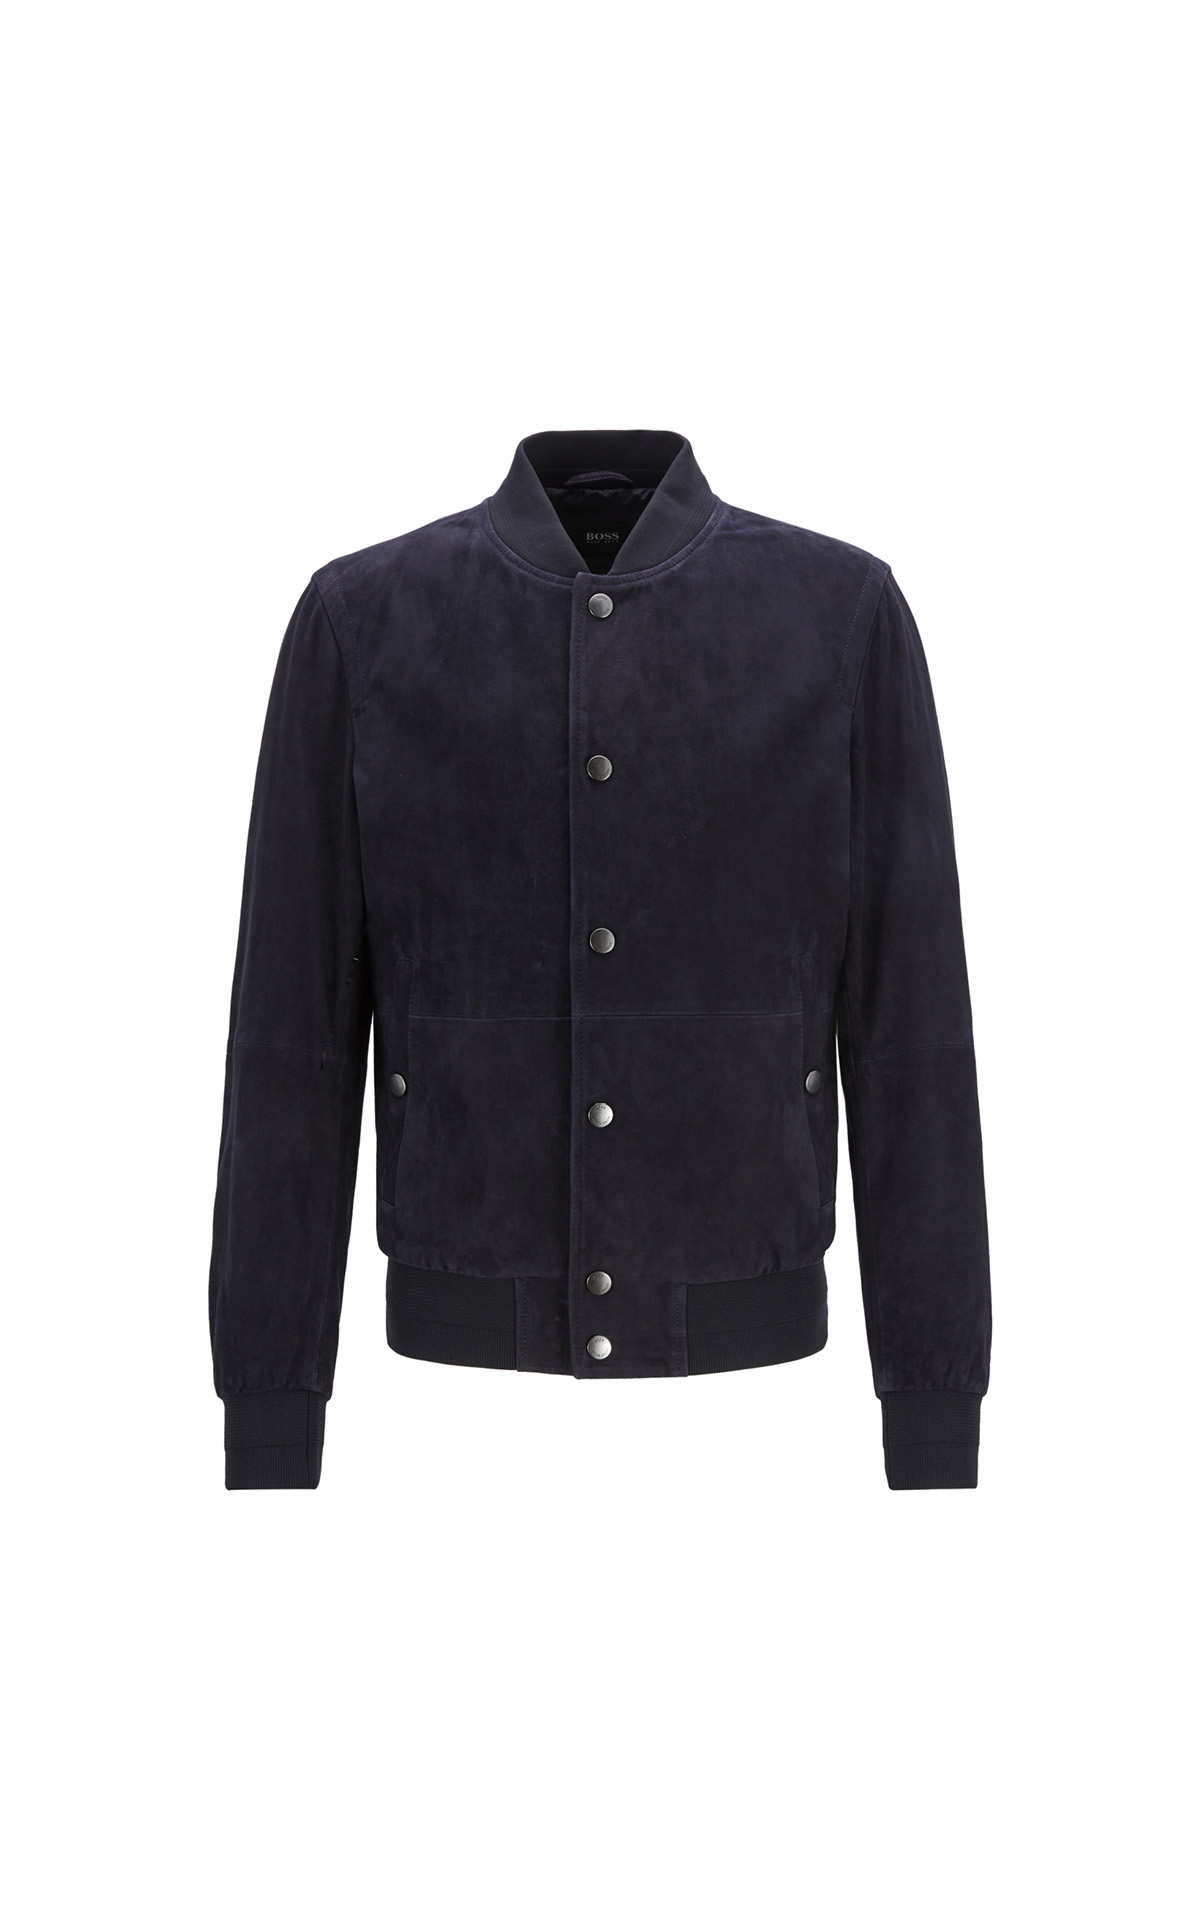 Boss Aminor Regular-fit Bomber-style jacket in lightweight suede at The Bicester Village Shopping Collection